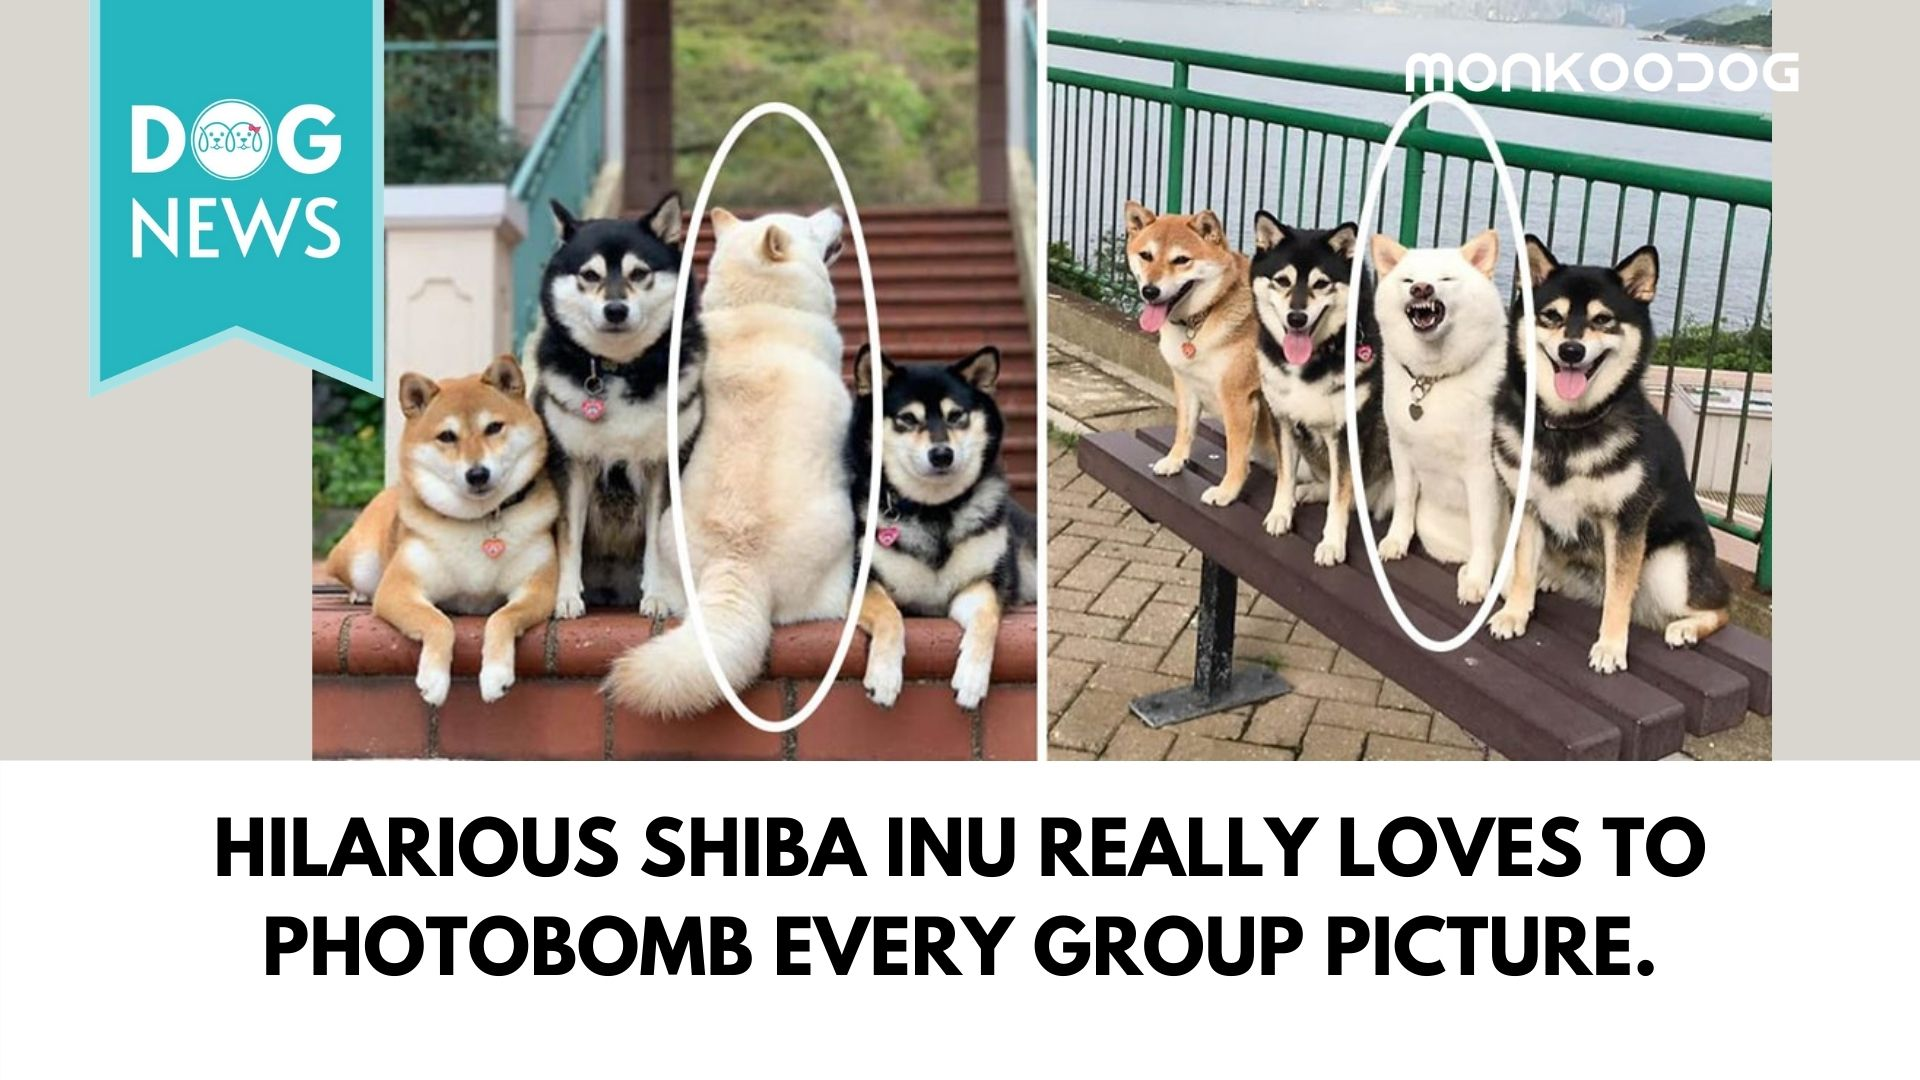 Hilarious Shiba Inu really loves to photobomb every group picture.